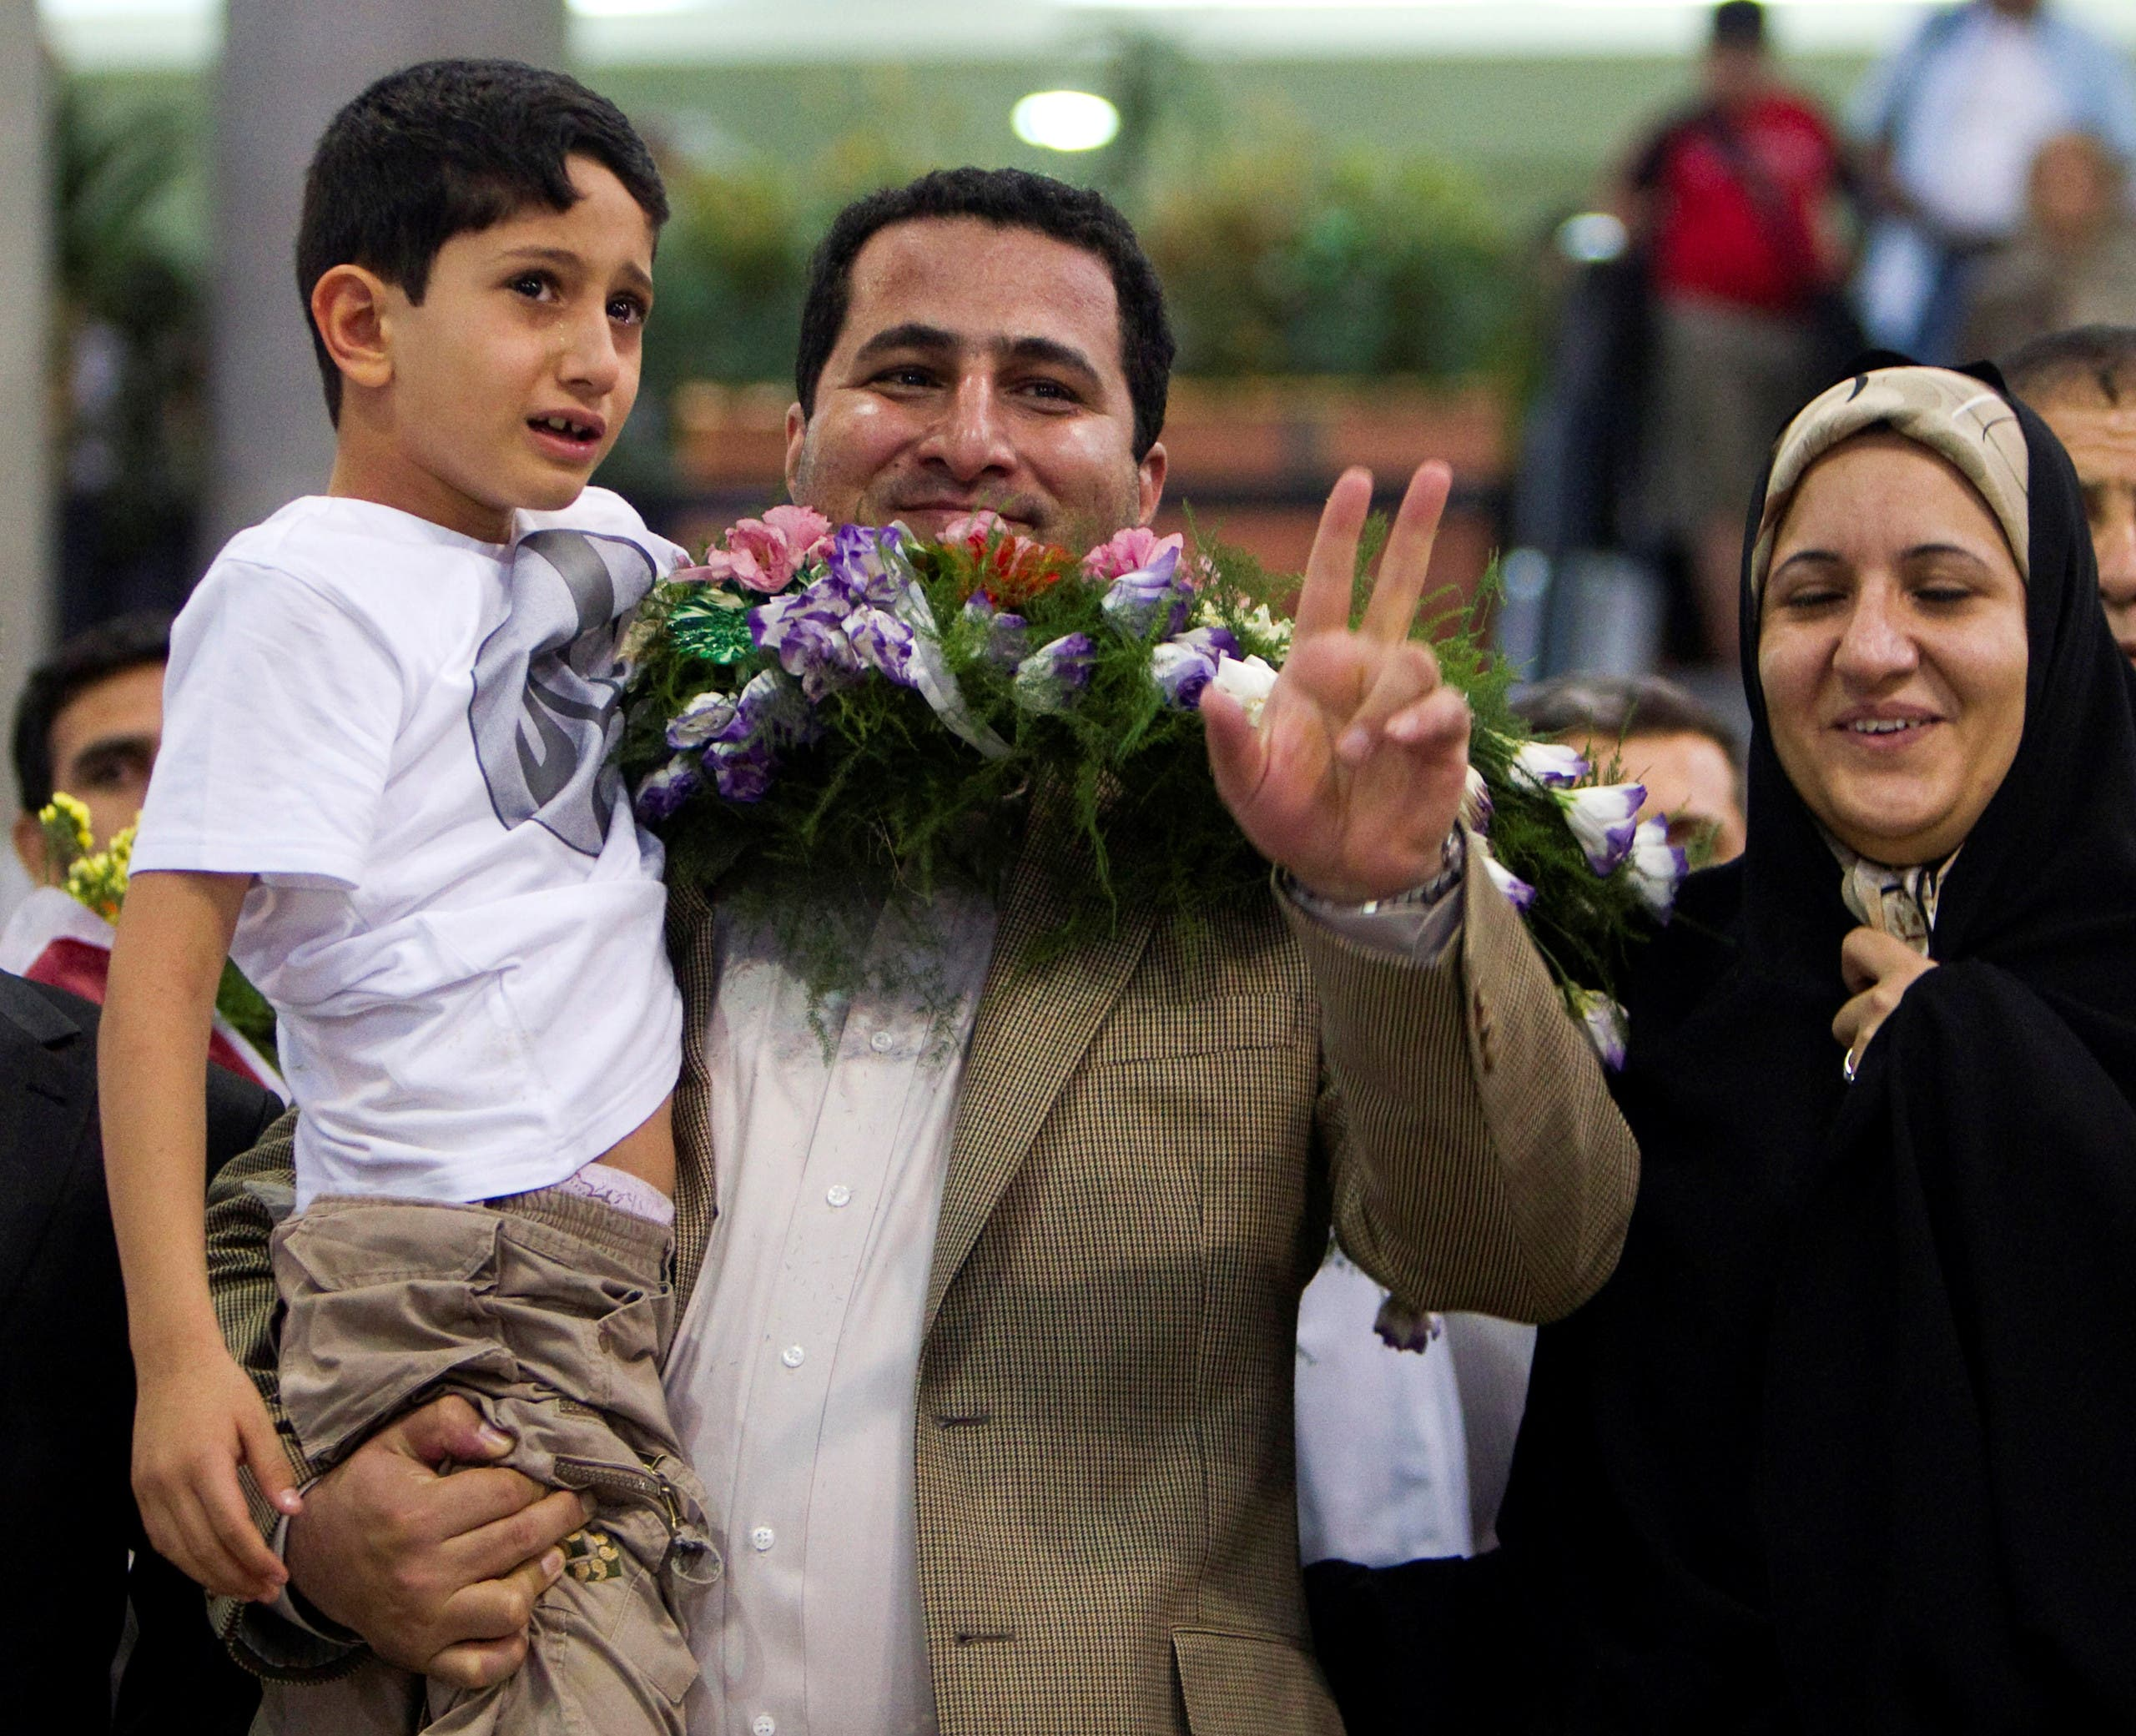 Iranian scientist Shahram Amiri flashes the victory sign as he arrives at the Imam Khomini Airport in Tehran, July 15, 2010. REUTERS